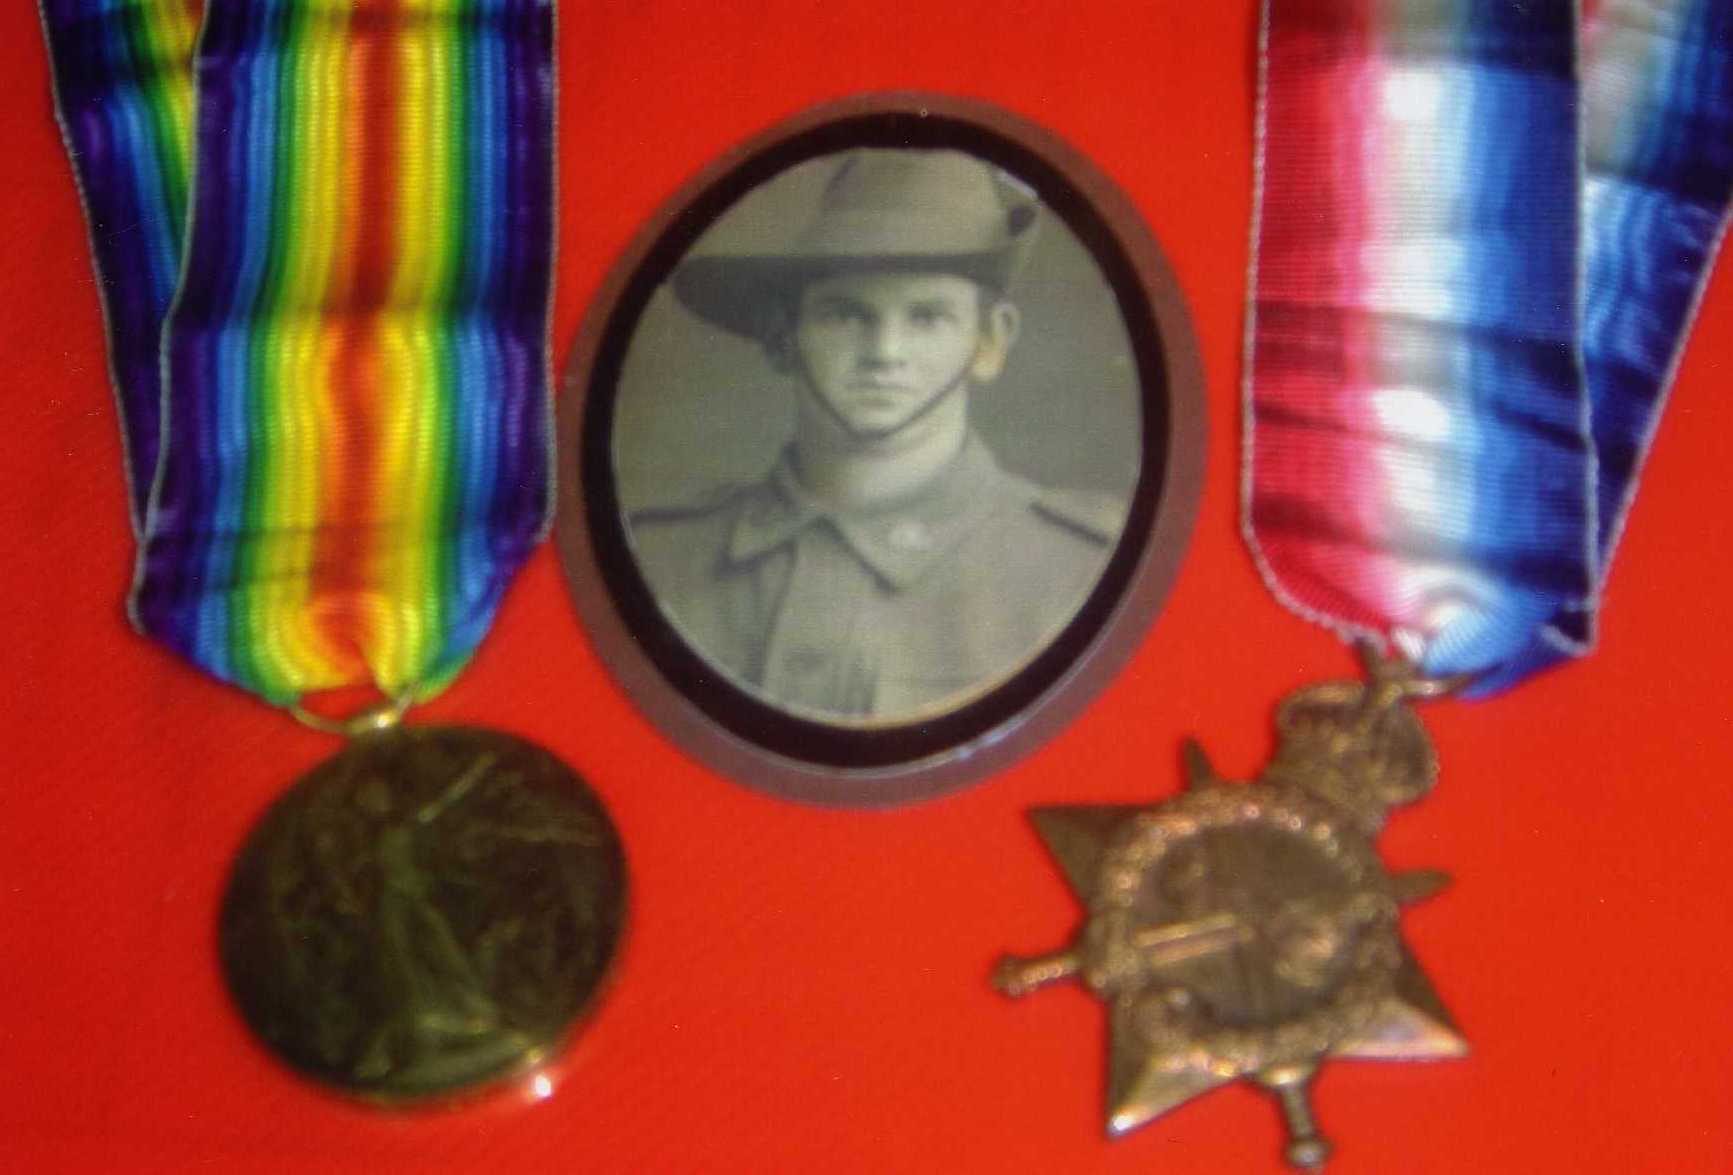 William's photograph and medals